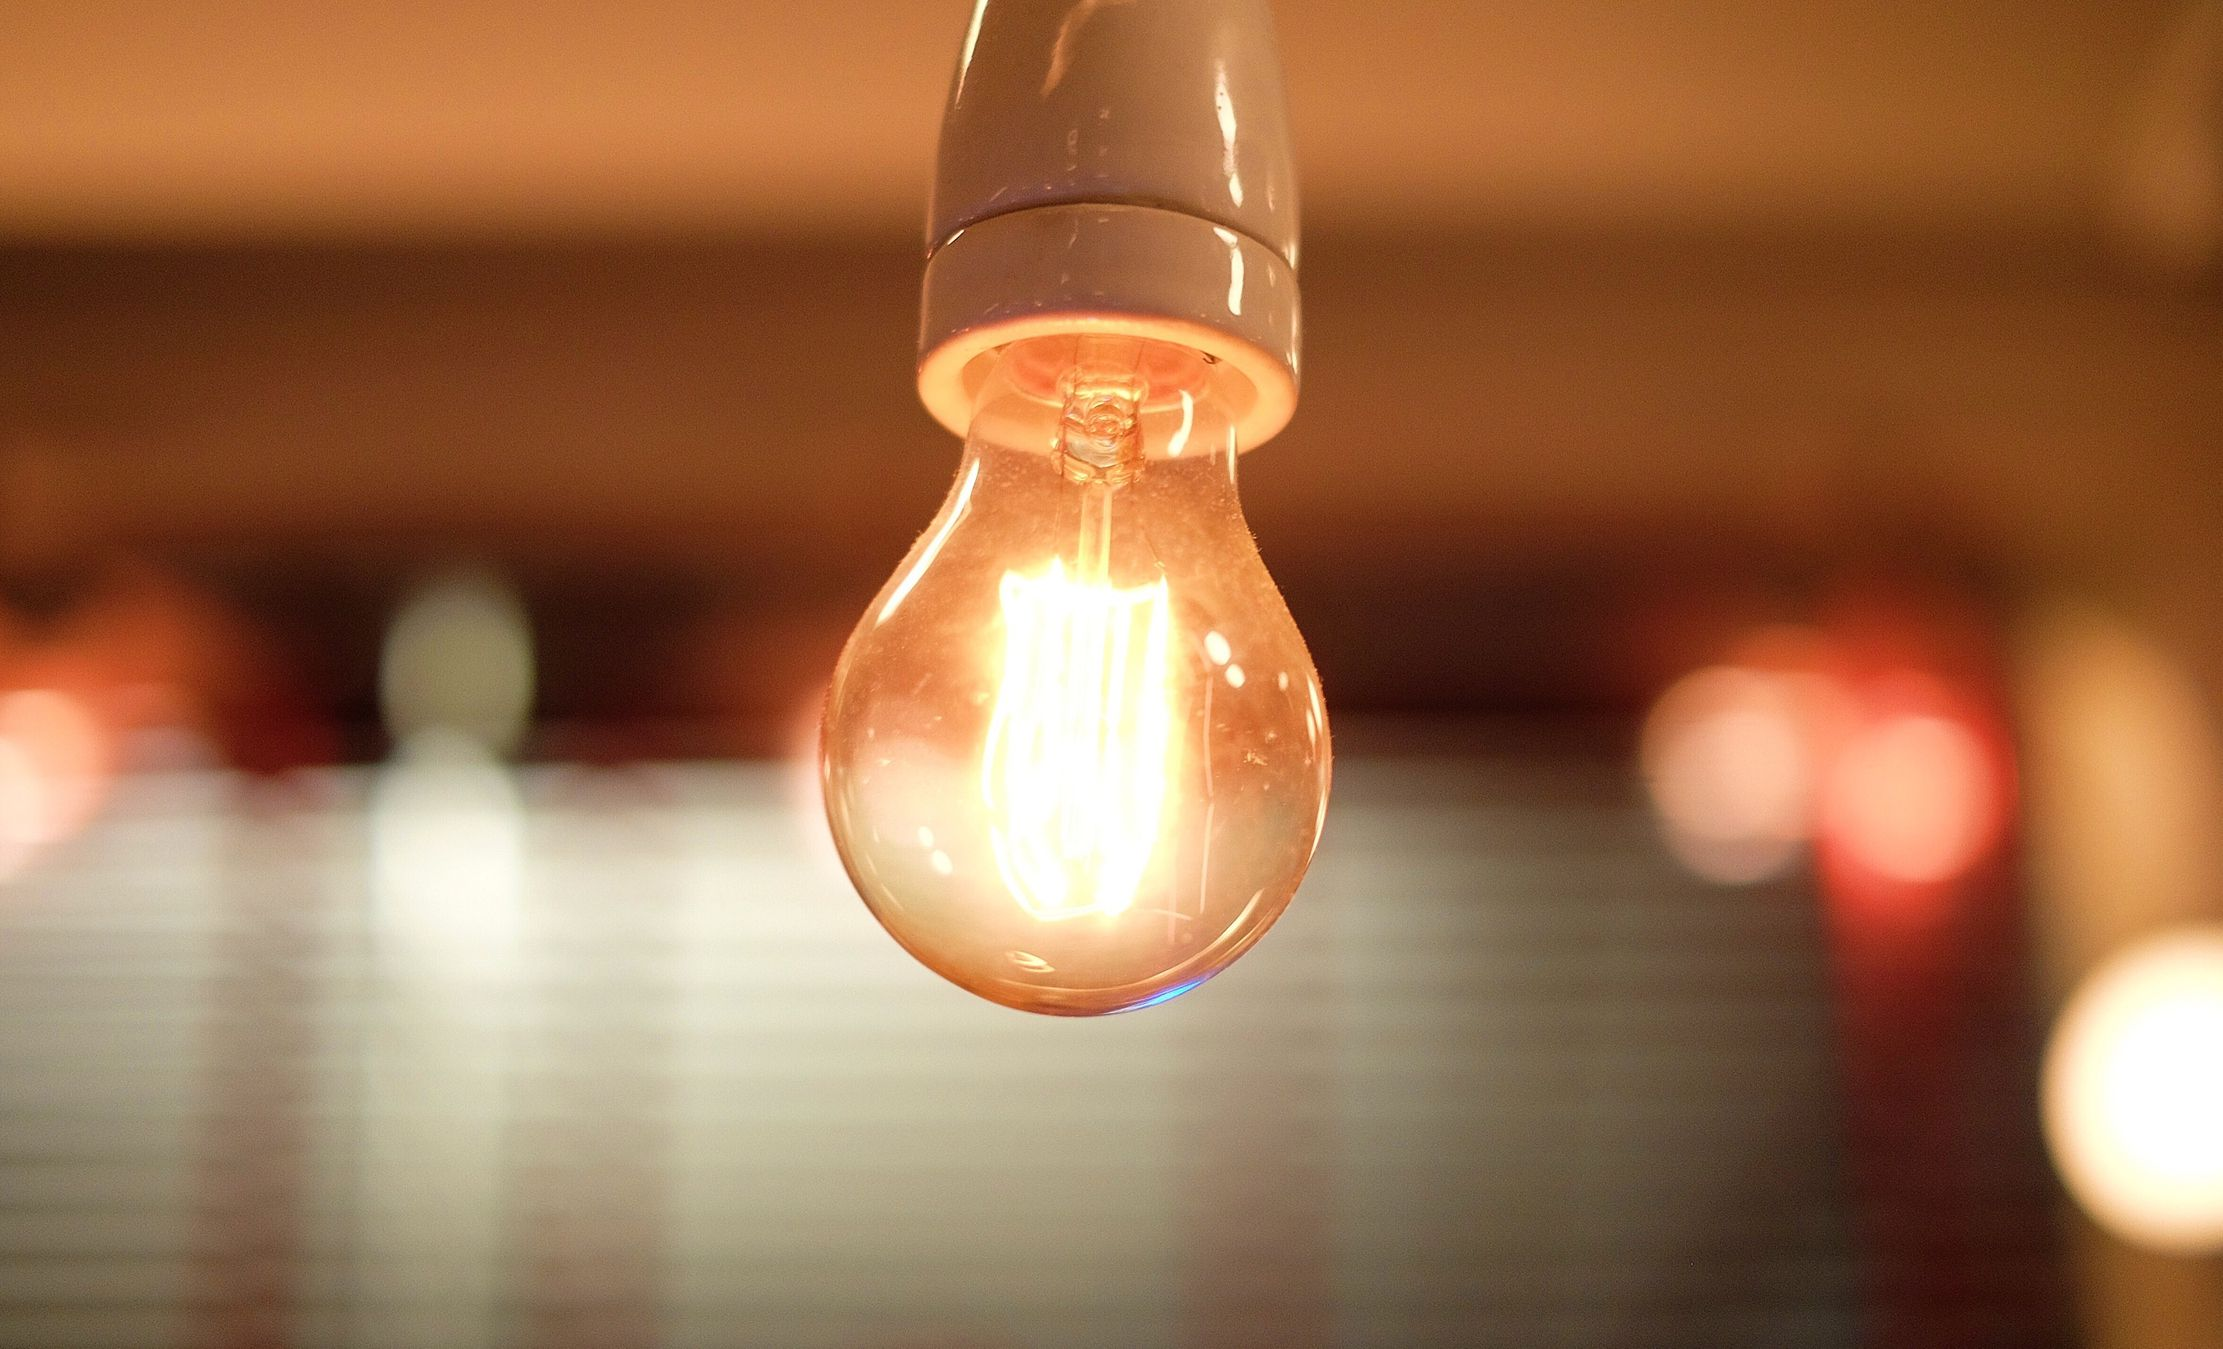 8 Reasons Why Your Light Bulbs May Be Burning Out Early Pull Chain Fixtures Are Easy To Replace When The Switch Wears